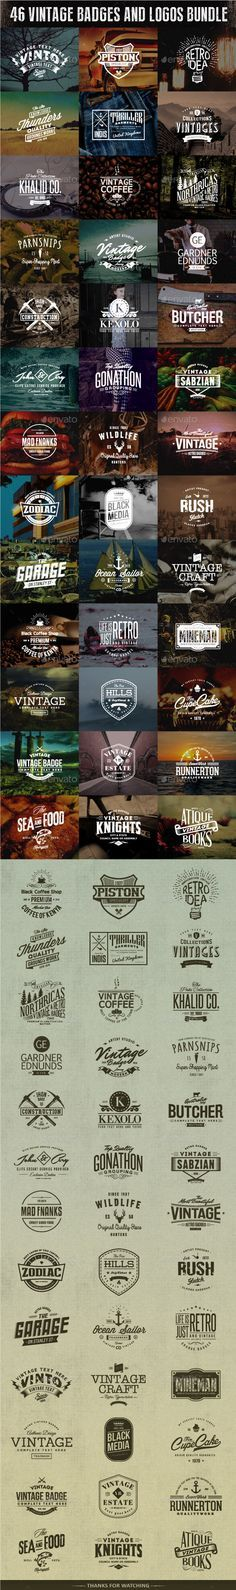 A Bundle of 46 Badges and logos which can be used as your logos, labels, badges, watermark and other identity,branding materials, design proposal, marketing graphics, blog headers, and so much more Use these logos as your latest project identity and graphics, it'll bring out strong branding presence and weathered impression of your brand and products. #design